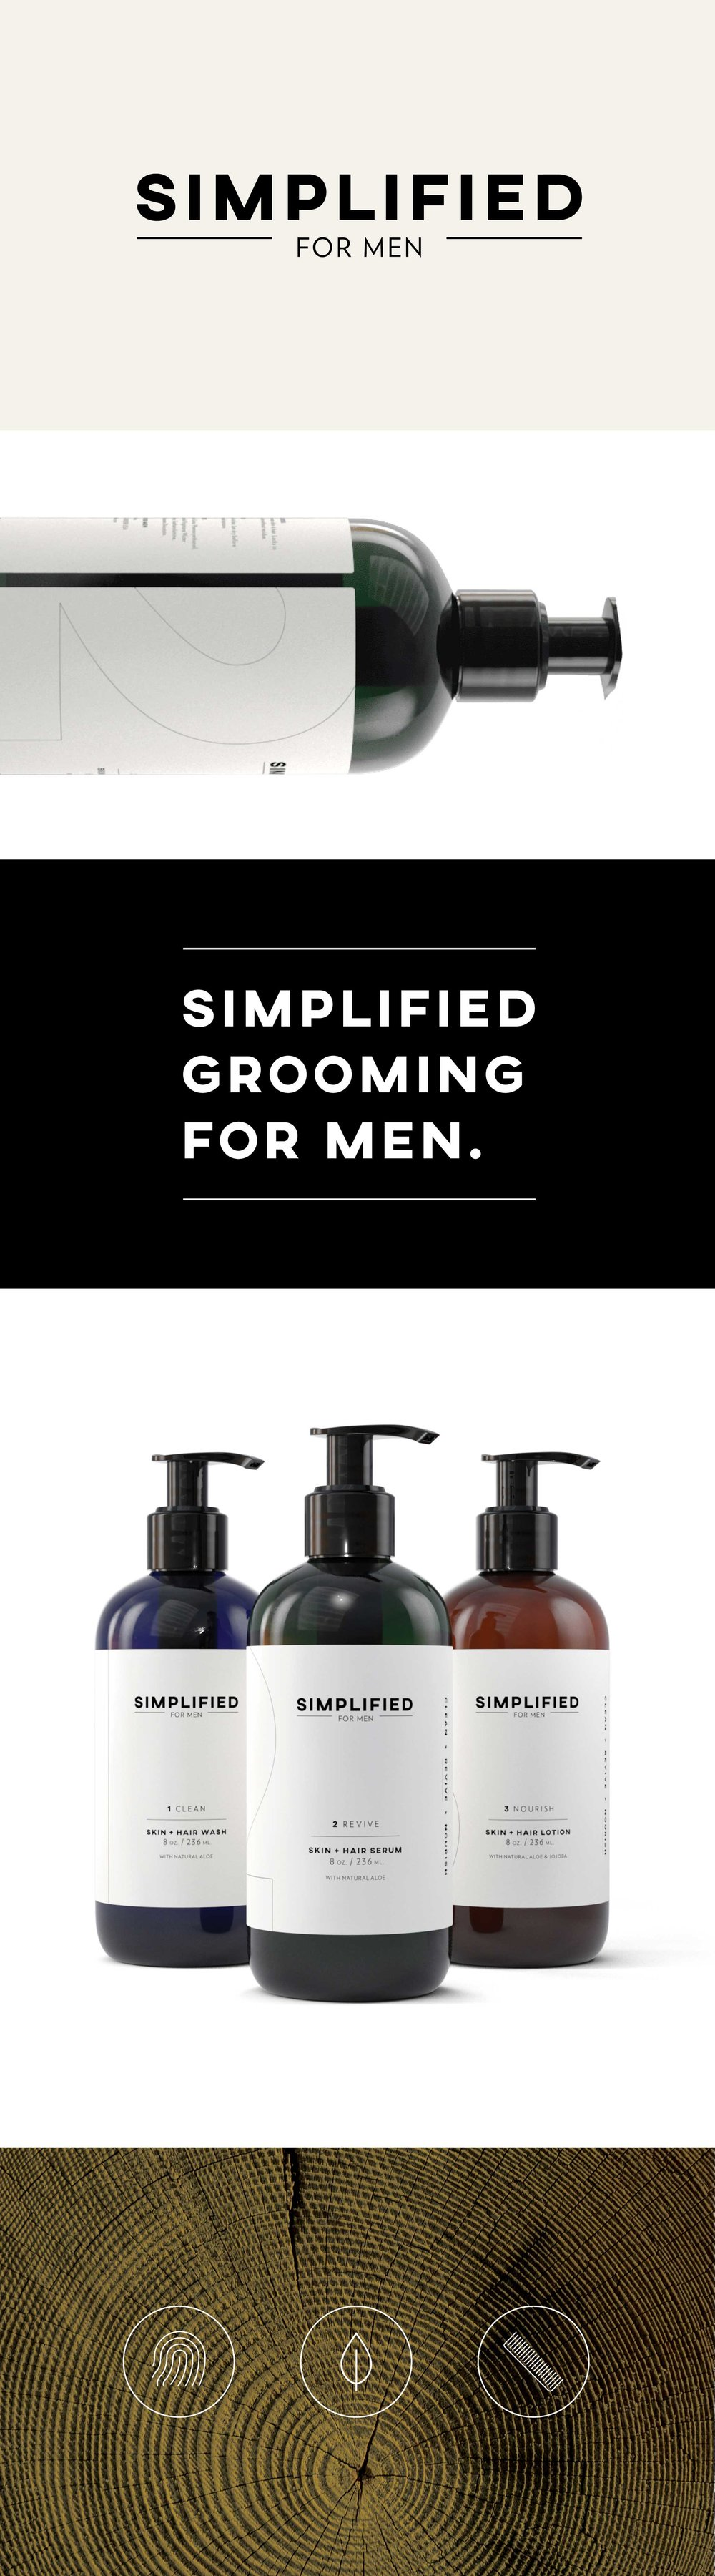 Simplified Grooming for Men | Branding + Packaging